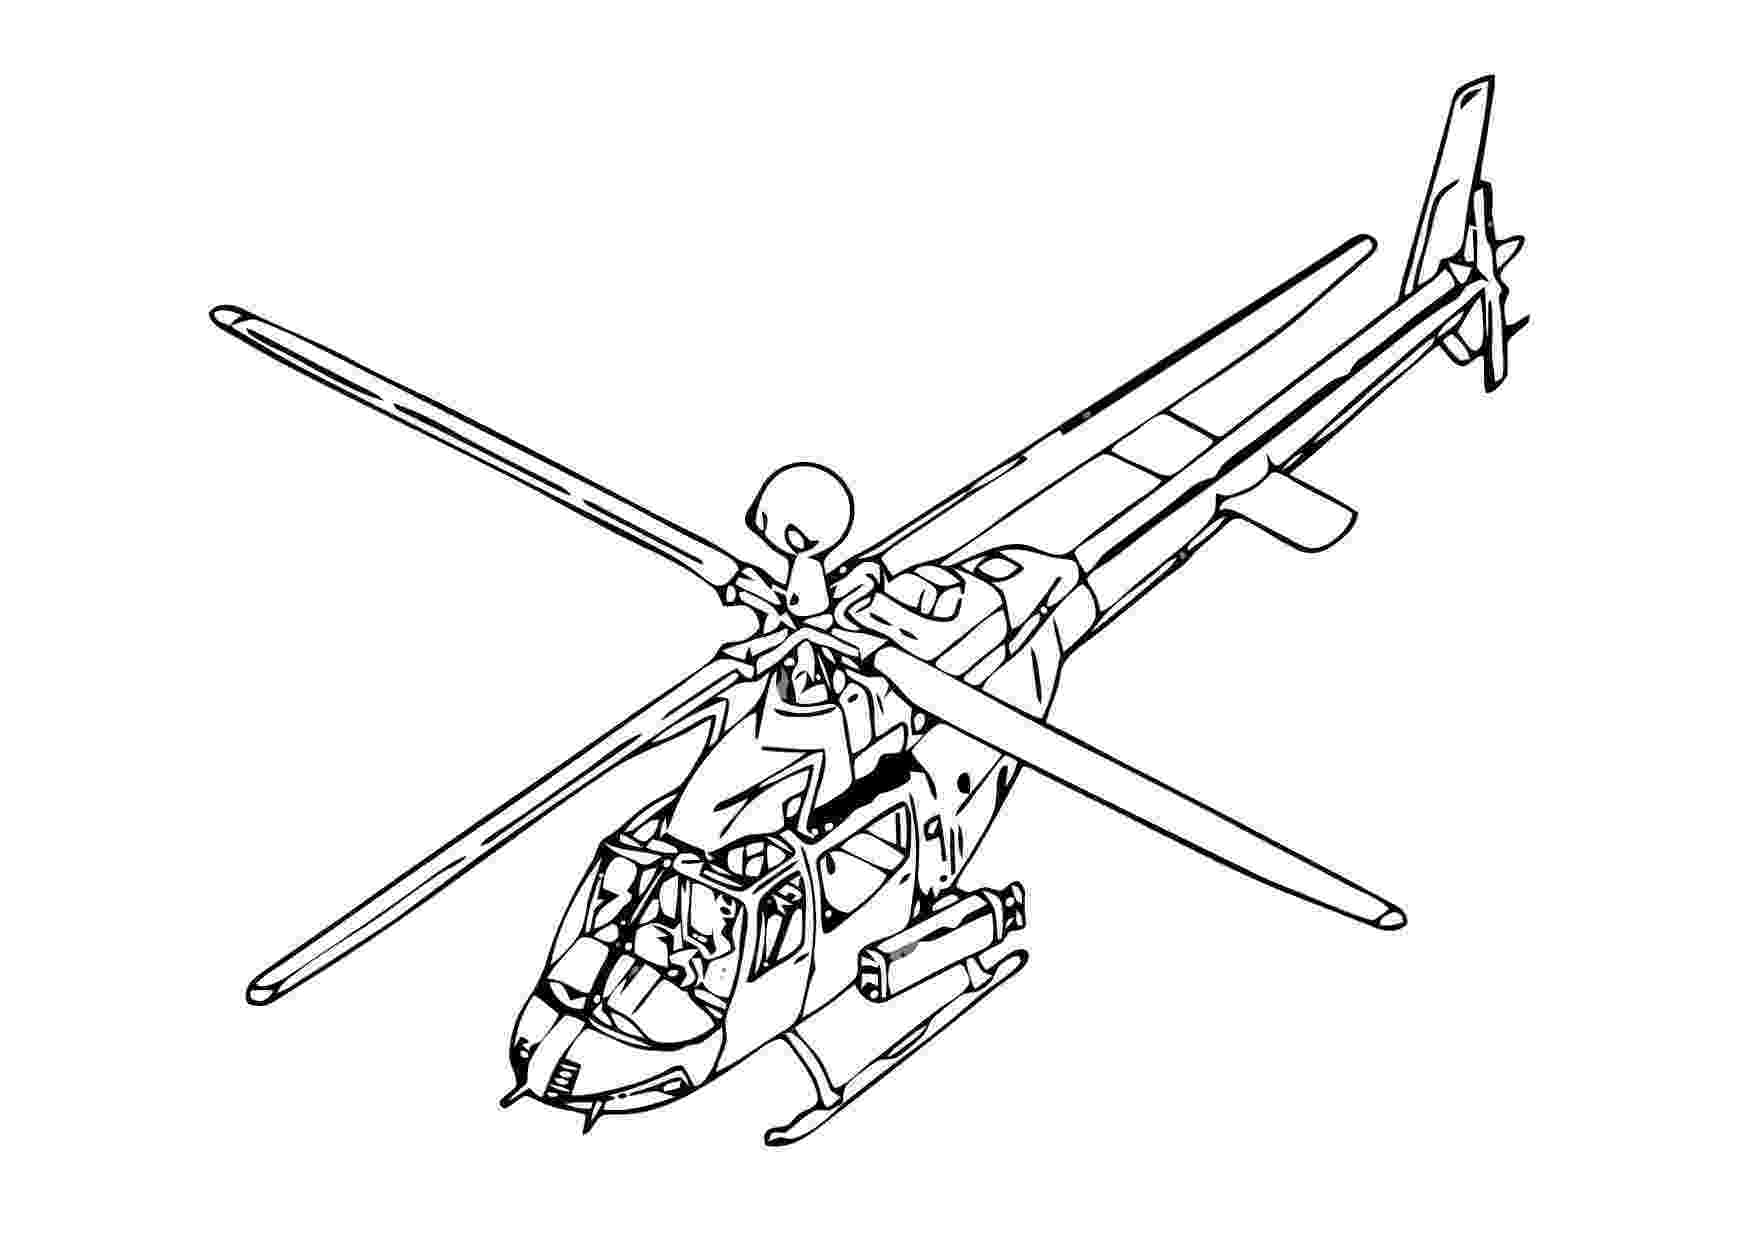 helicopter colouring helicopter coloring pages coloringpages1001com colouring helicopter 1 2